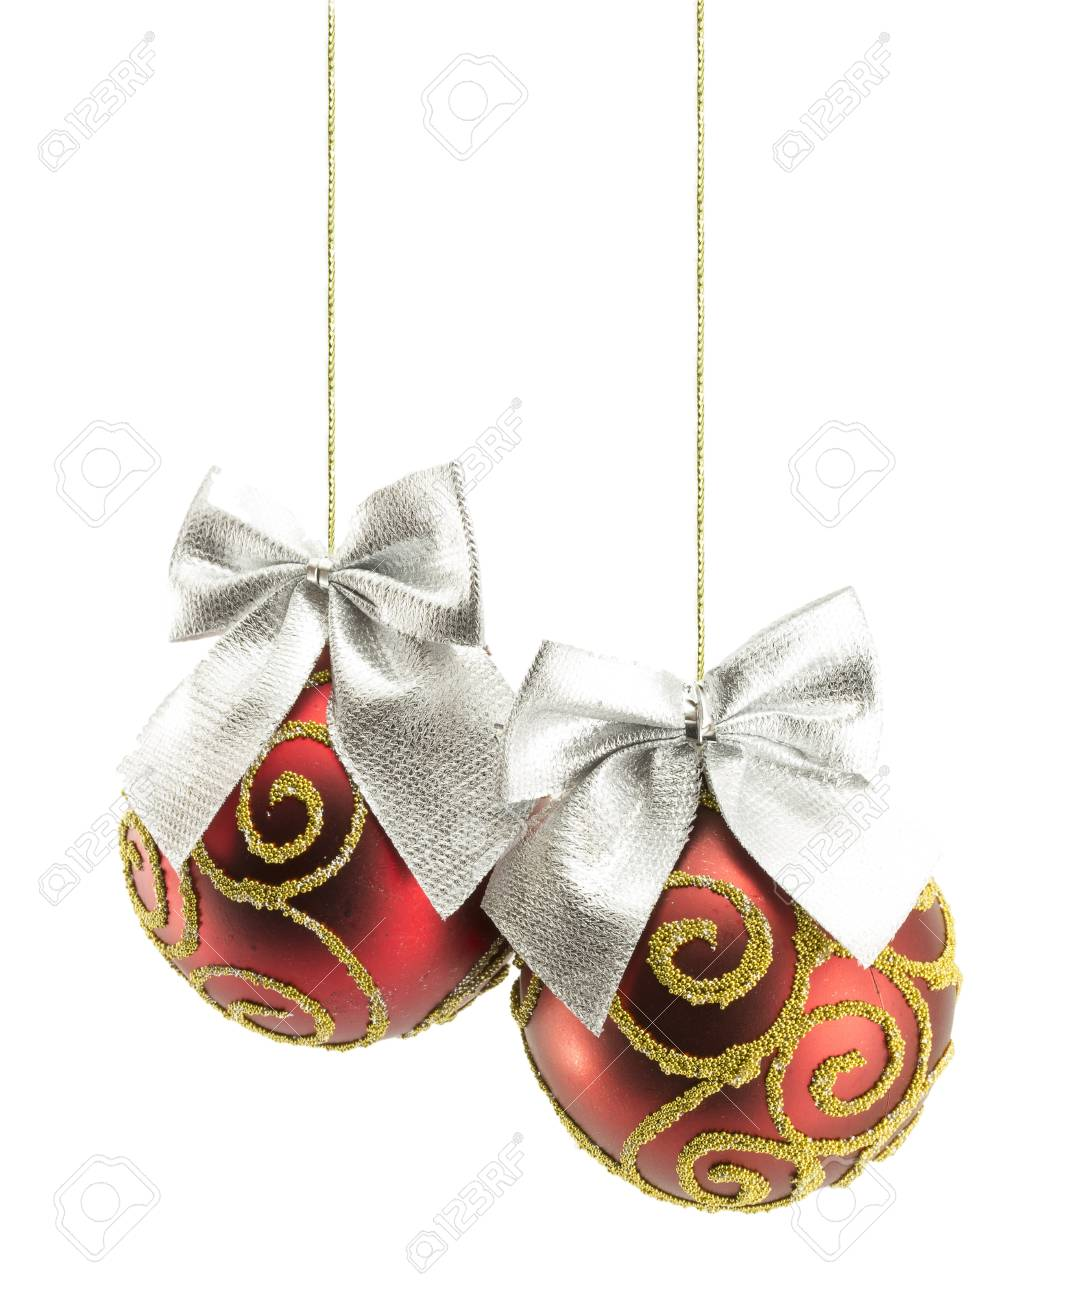 Christmas ball isolated on white background Stock Photo - 16793354